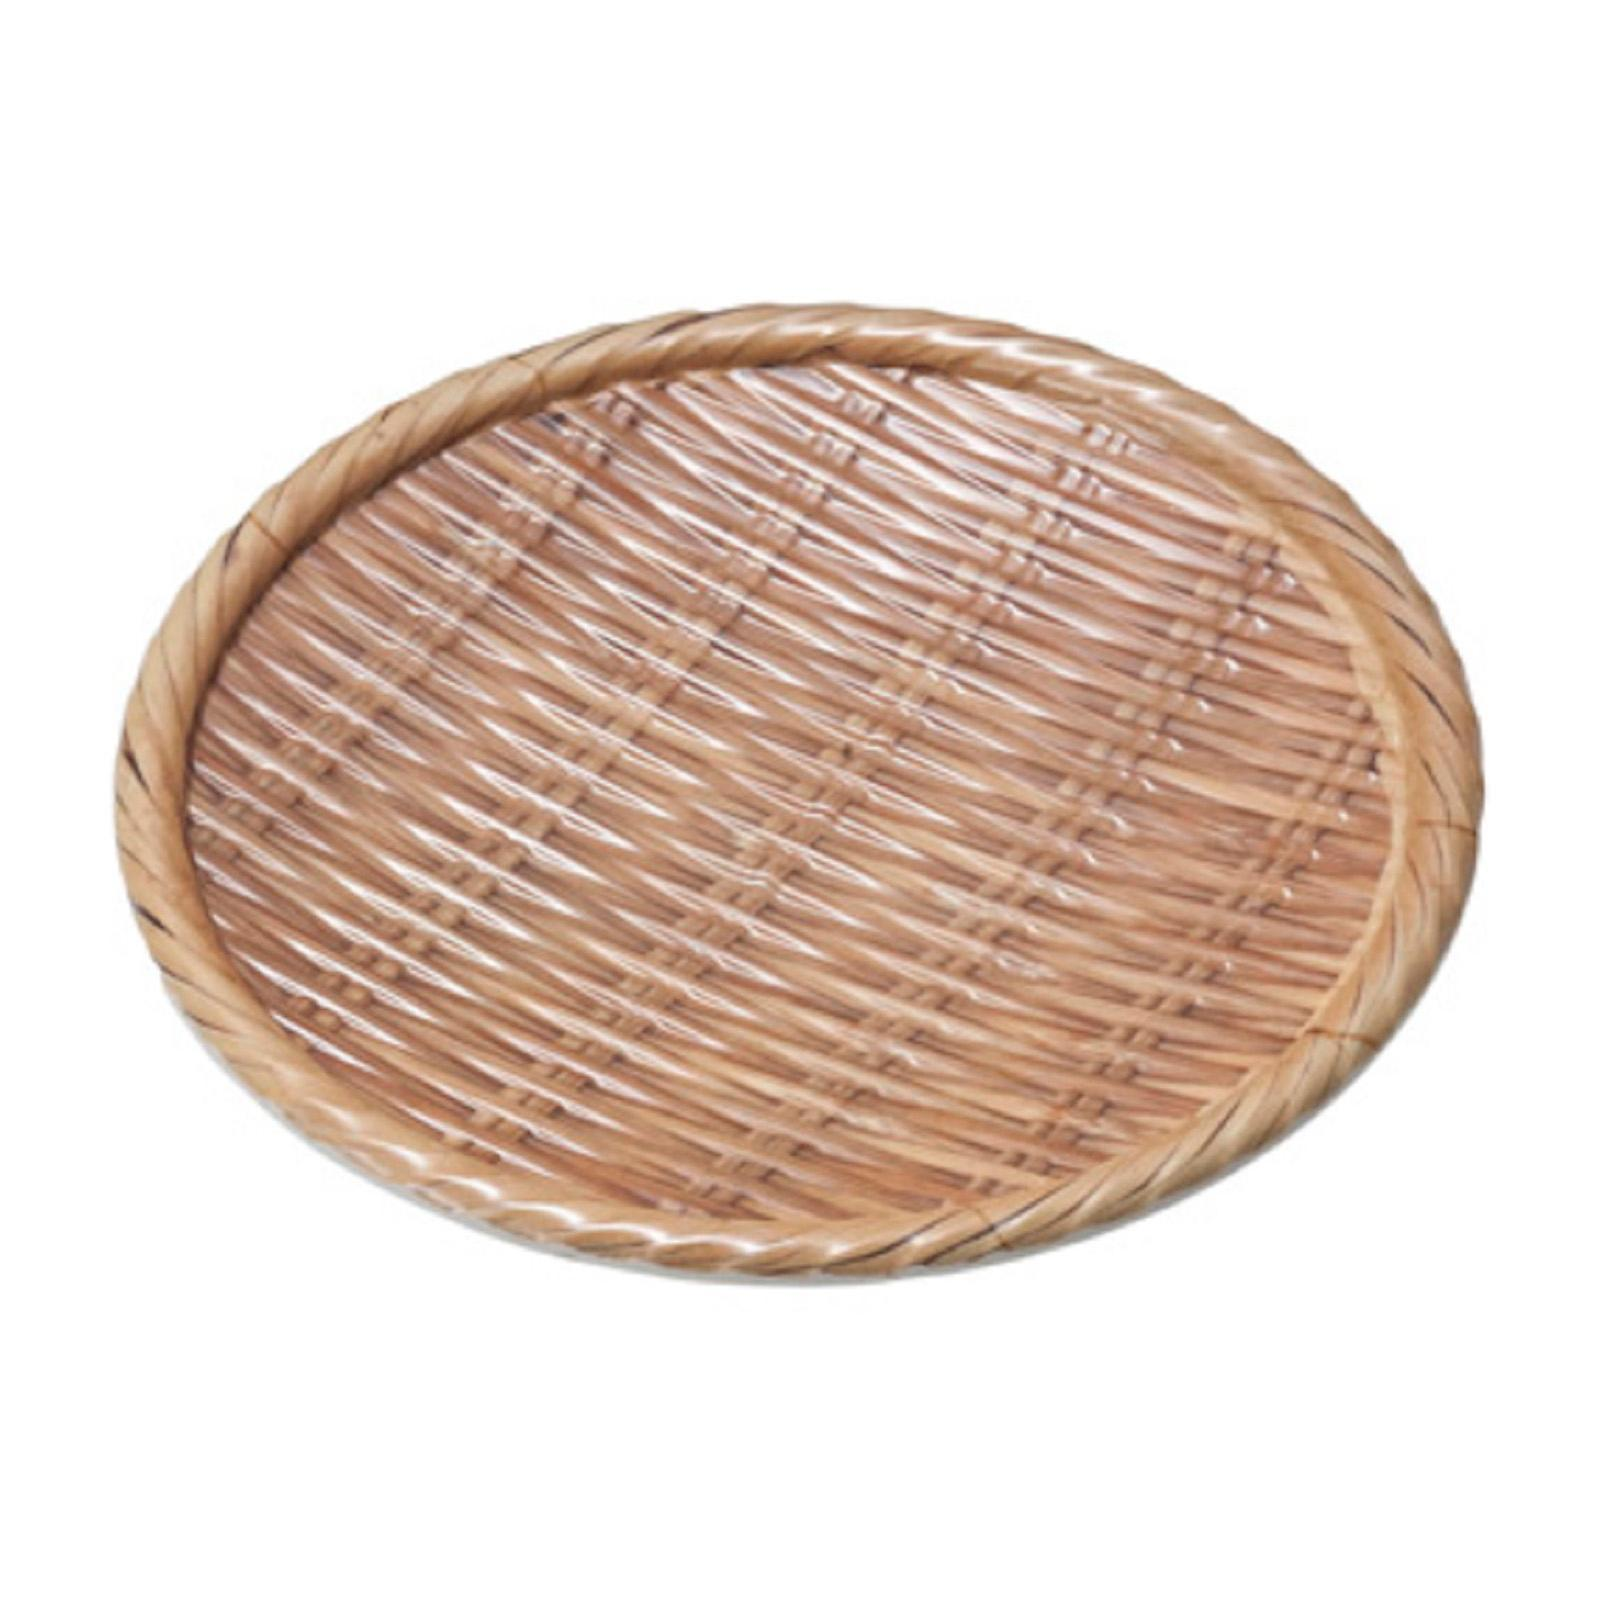 Shun Ta Melamine Round Plate 18 x H2.7 CM Natural Bamboo - By ToTT